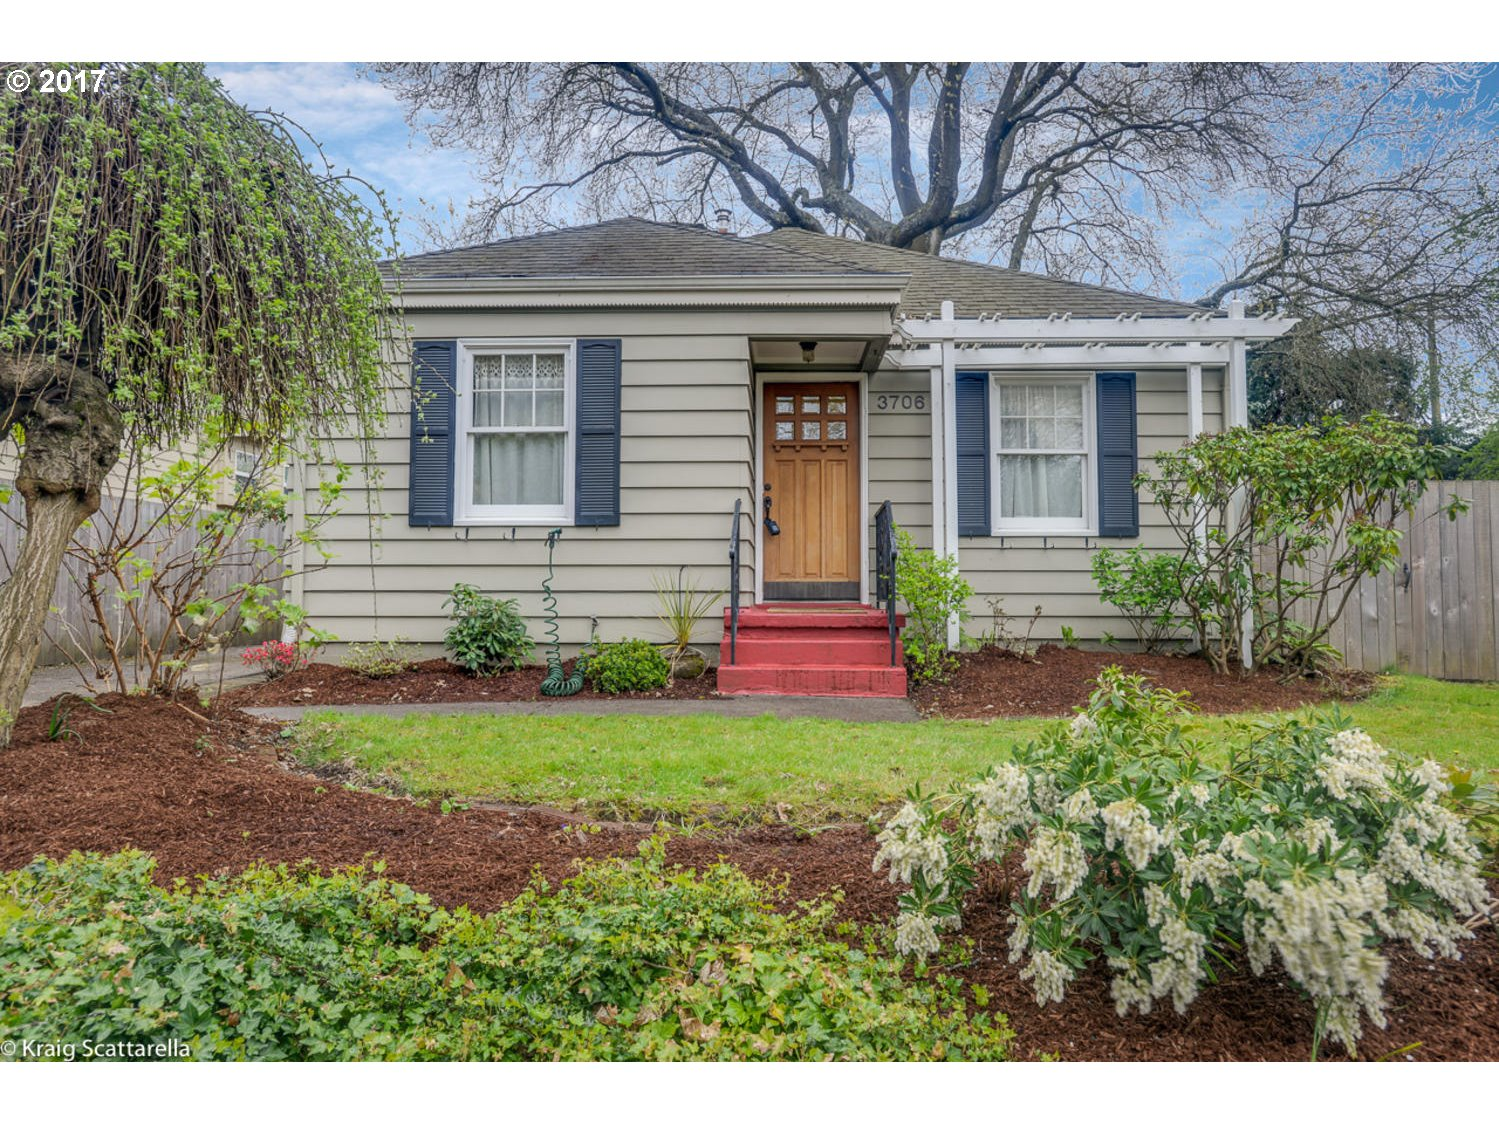 3706 SE REX ST Portland Home Listings - The Rob Levy Team Real Estate